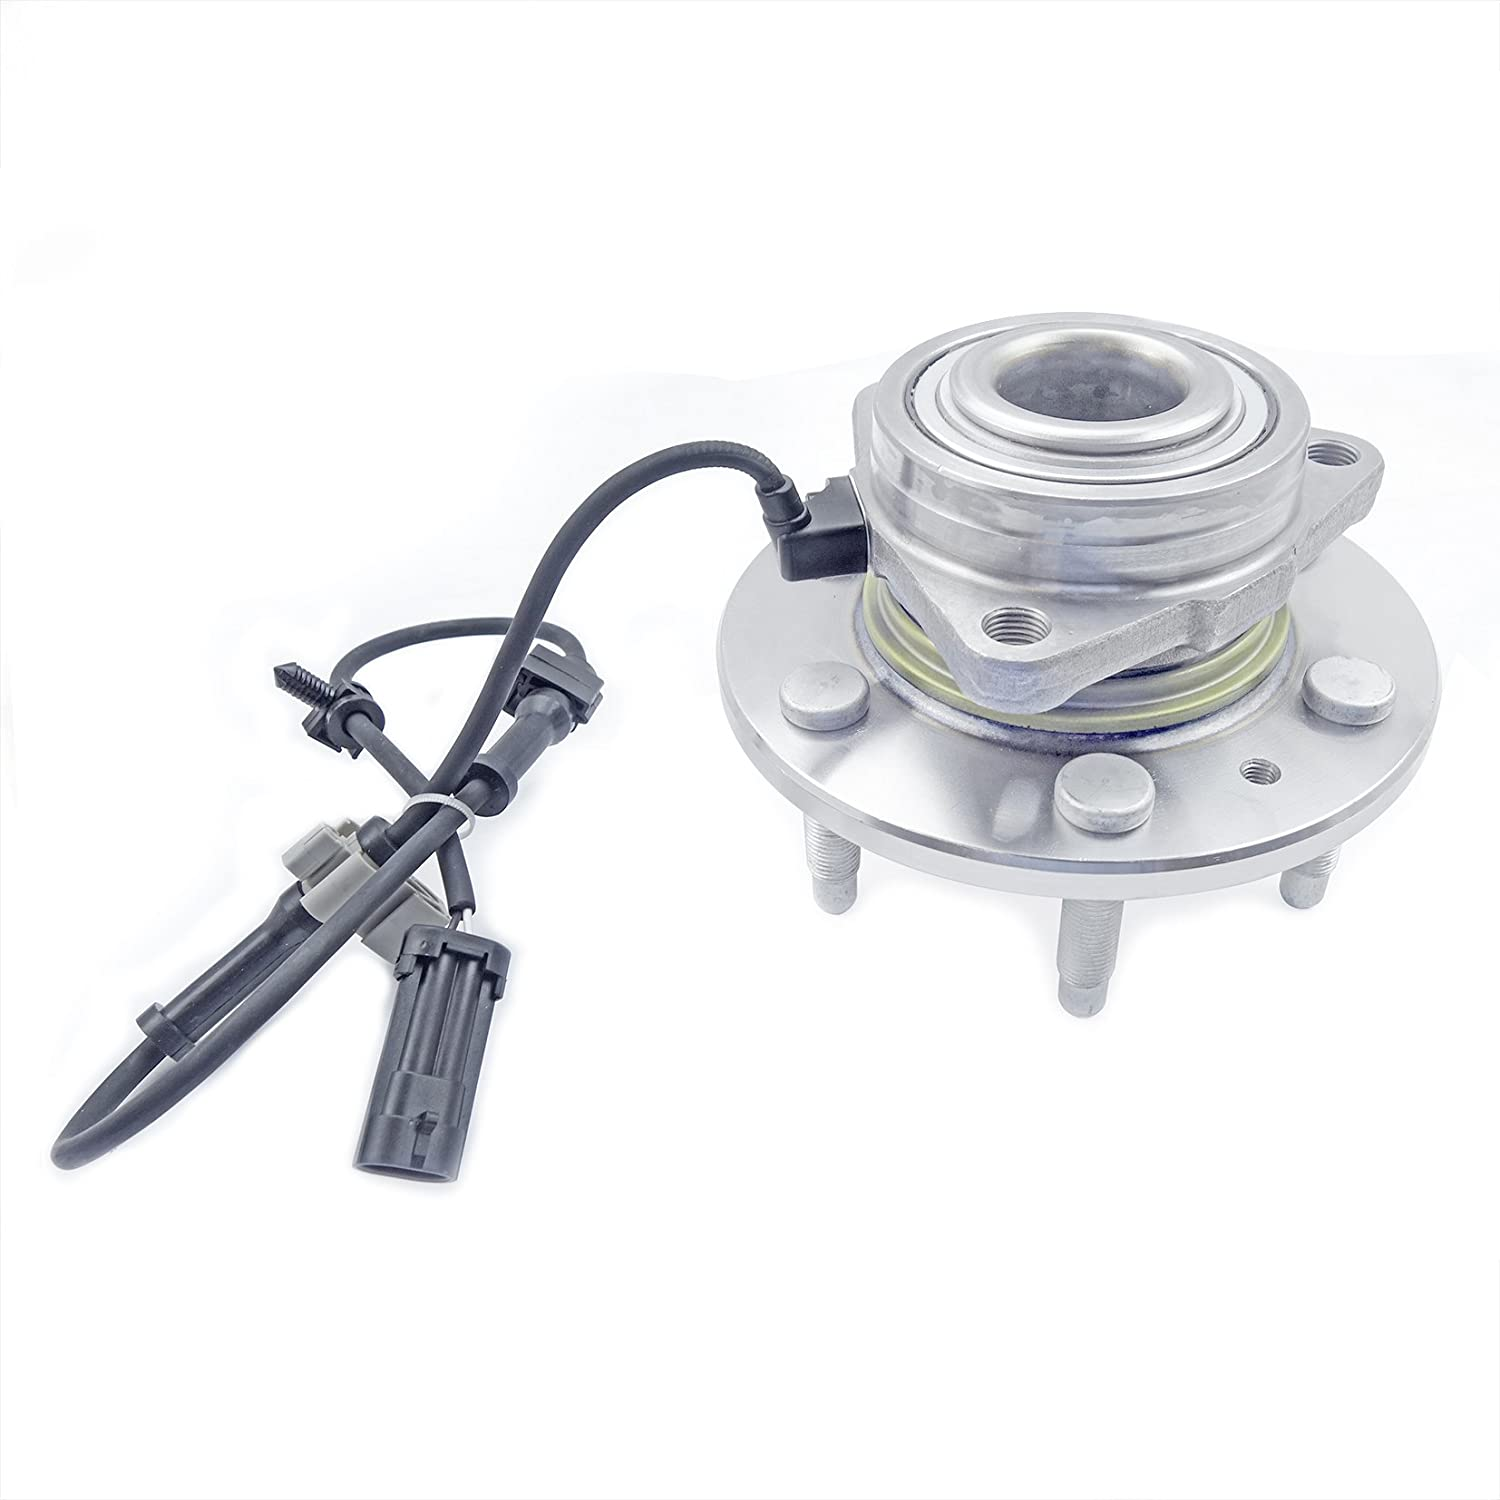 Crs Nt515036 New Wheel Hub Bearing Assembly Front Left 2000 Cadillac Escalade Speaker Wiring Right For Esv Ext H 2500 Silverado 1500hd Tahoe K 1500 Suburban